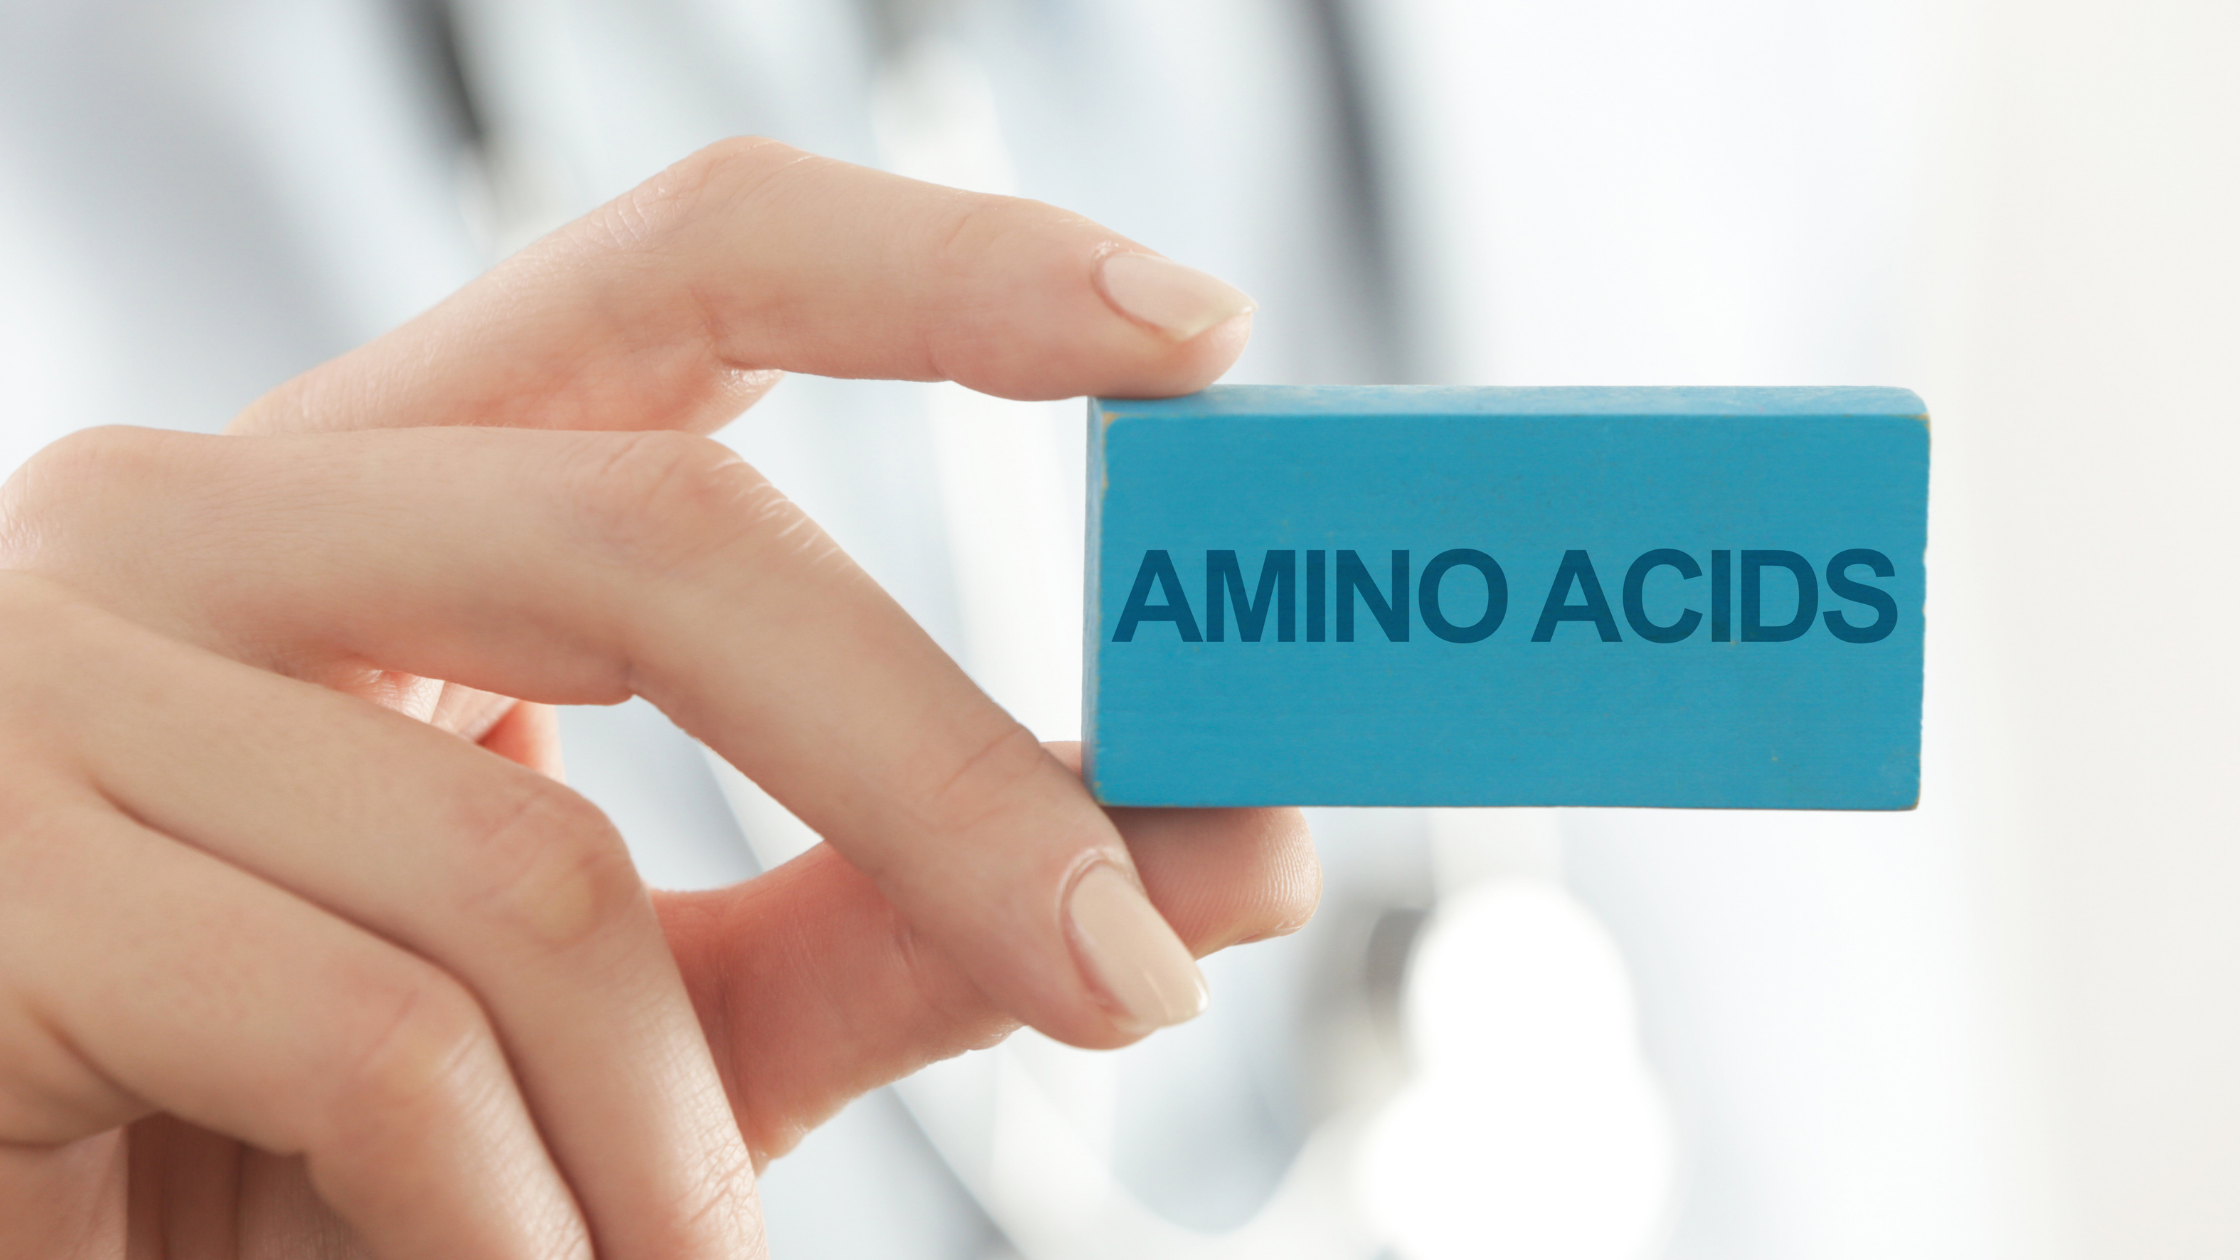 Function of amino acids for the skin